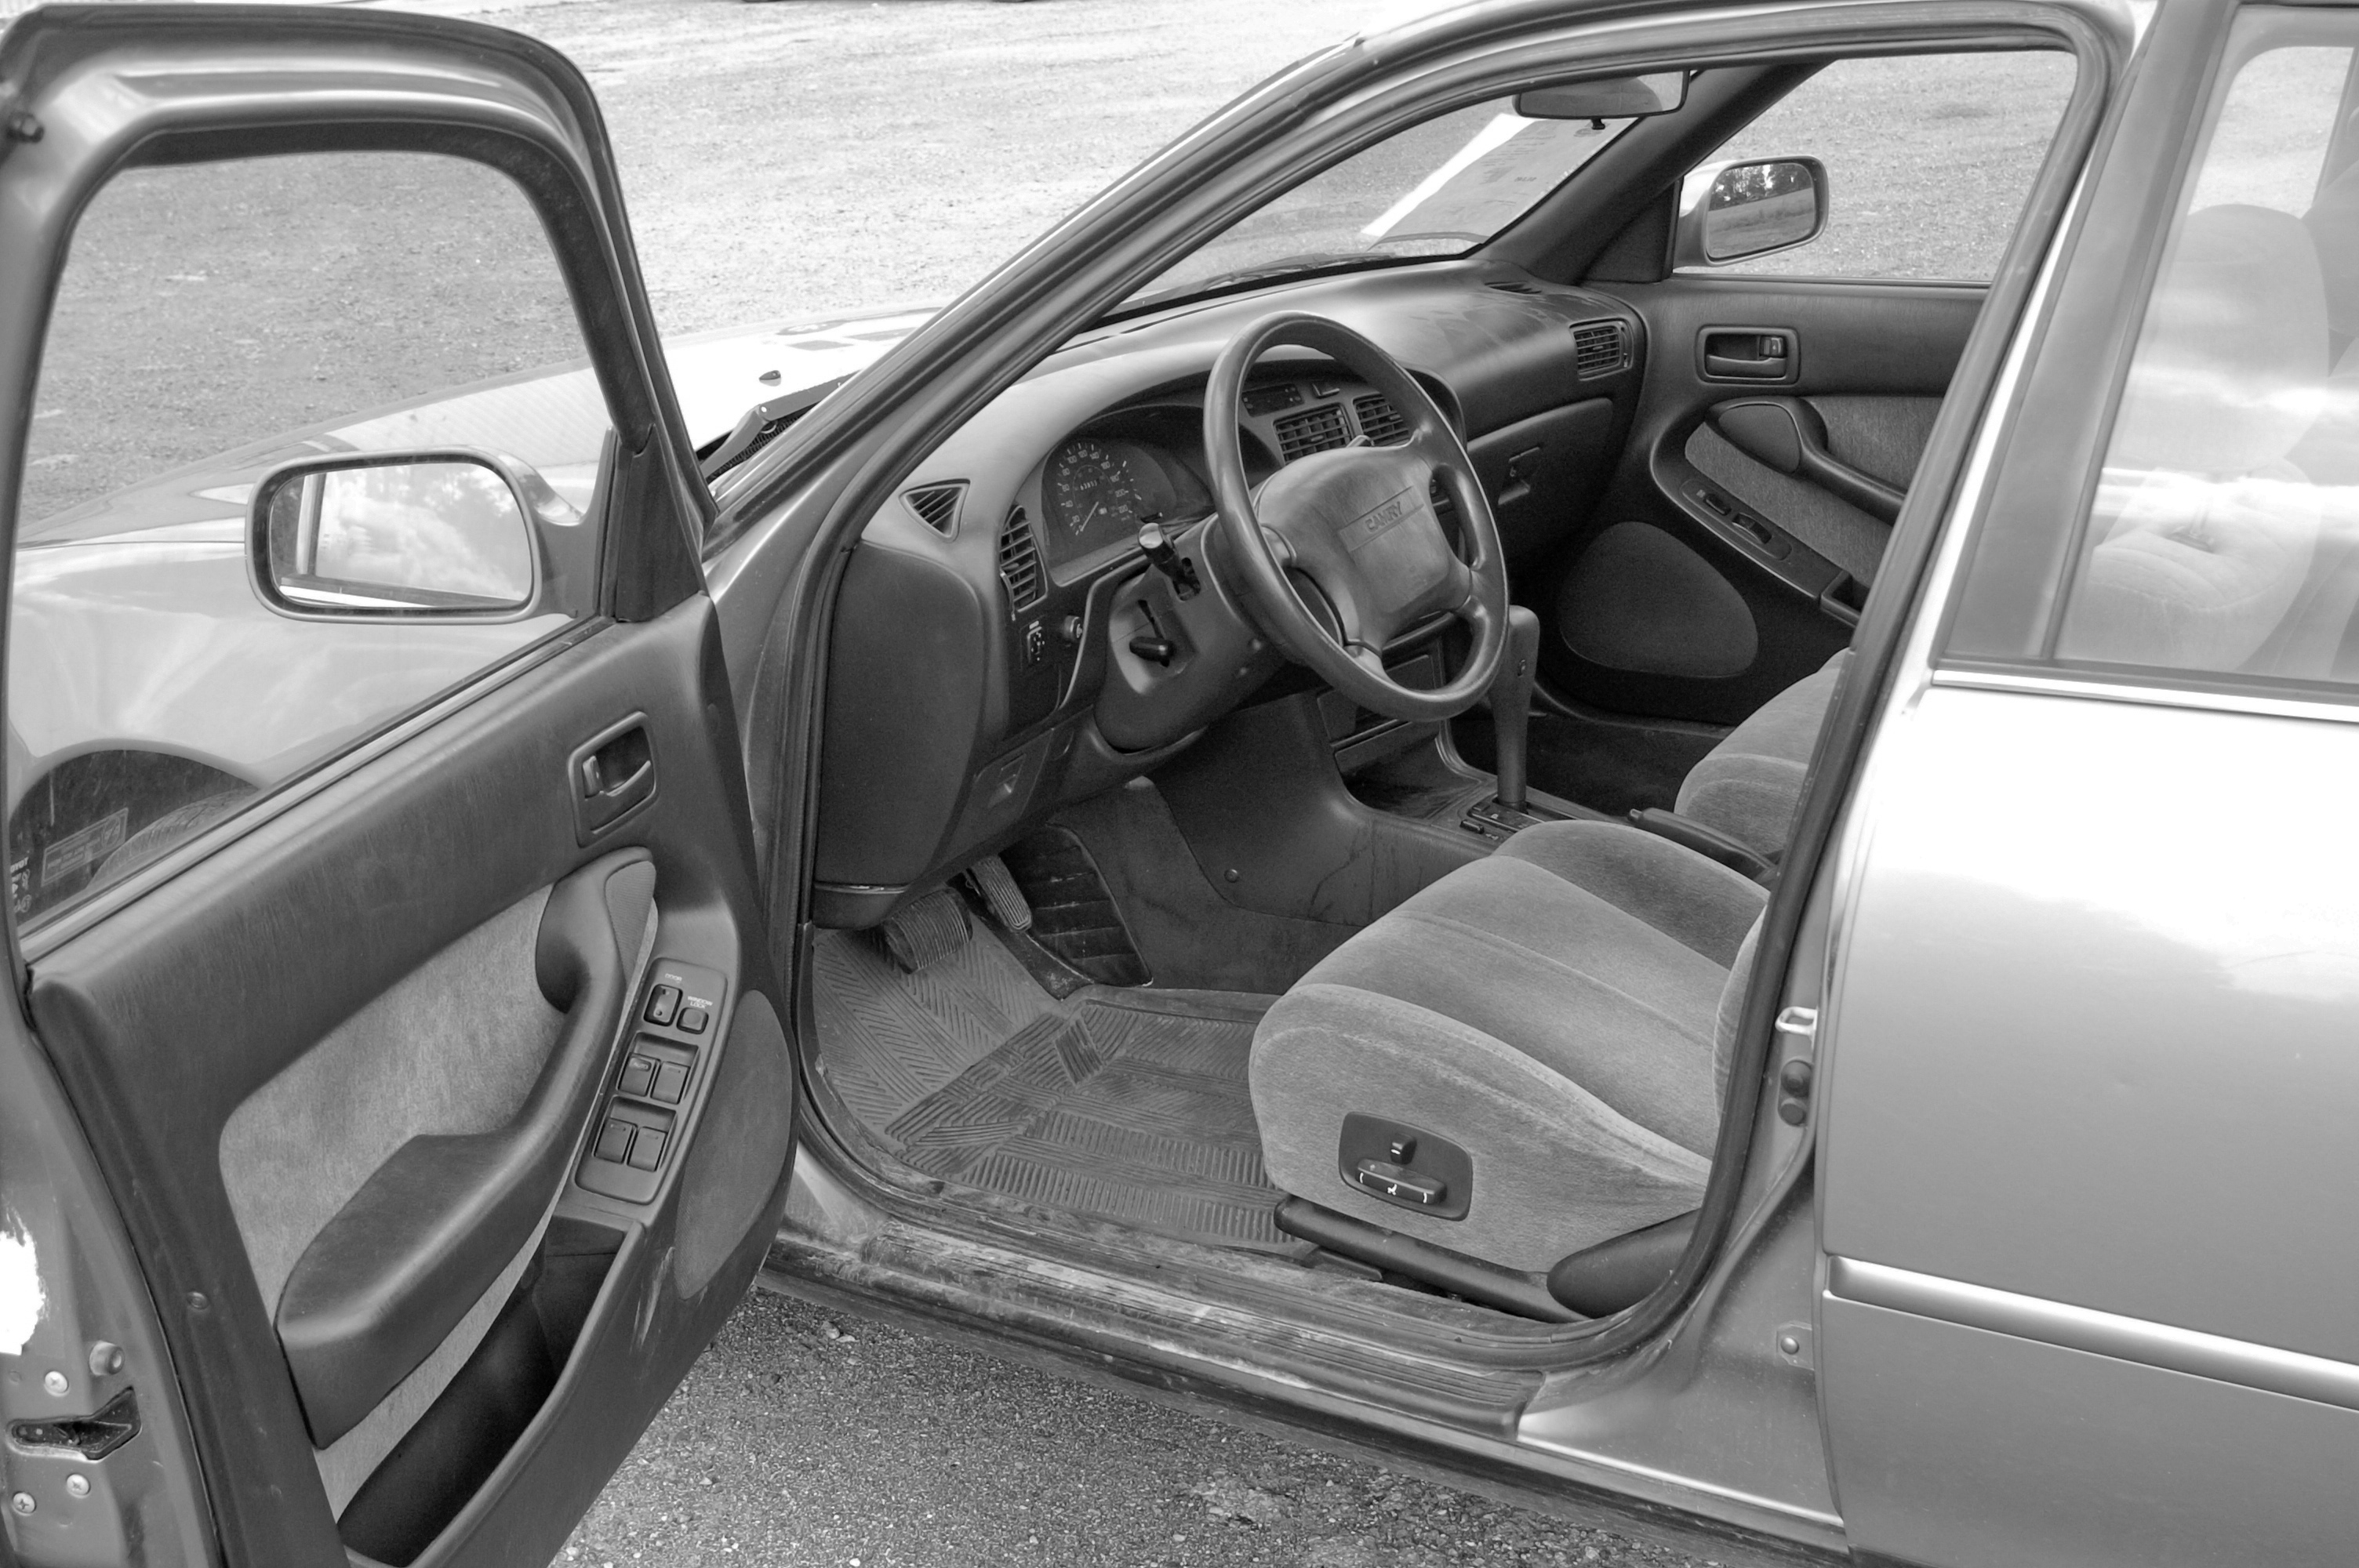 After The Contest Crown 1993 Toyota Camry Open Road Diaries 2011 Interior Finished